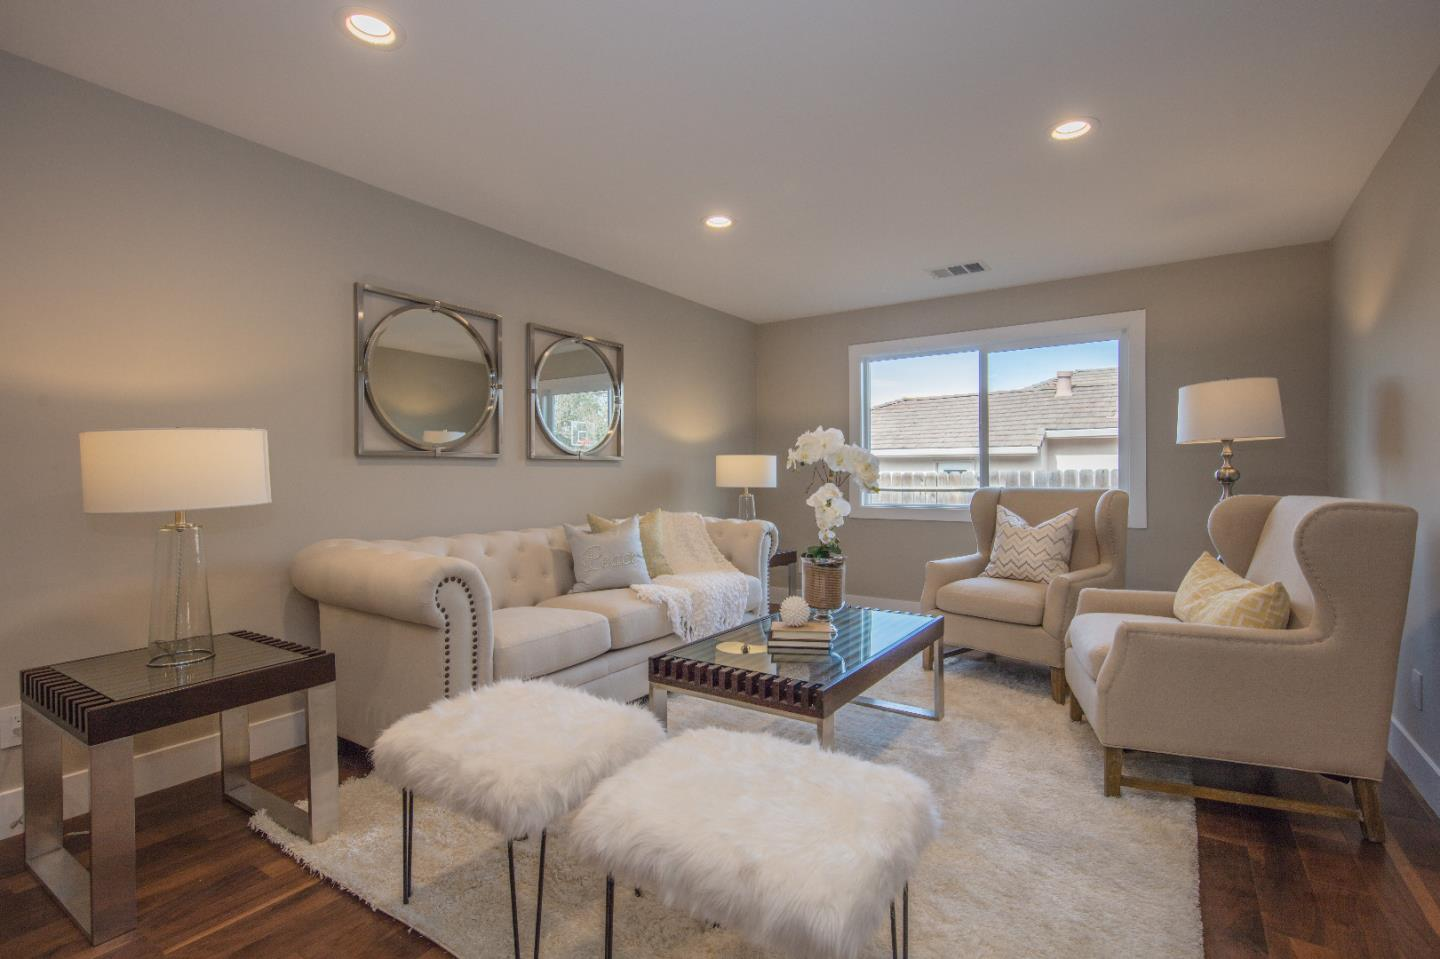 Additional photo for property listing at 405 Giannini Dr  SANTA CLARA, CALIFORNIA 95051